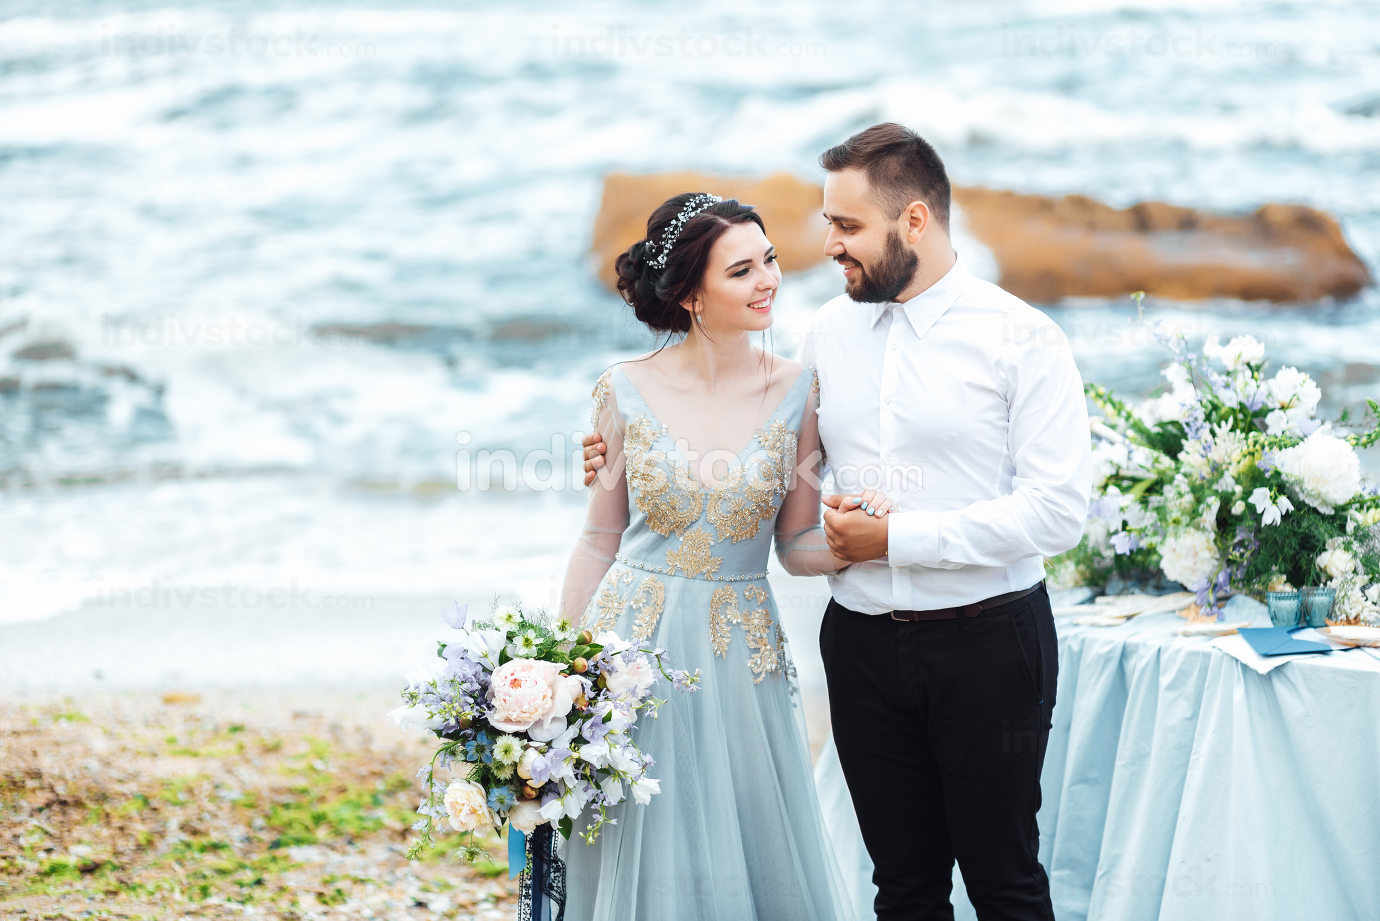 same couple with a bride in a blue dress walk